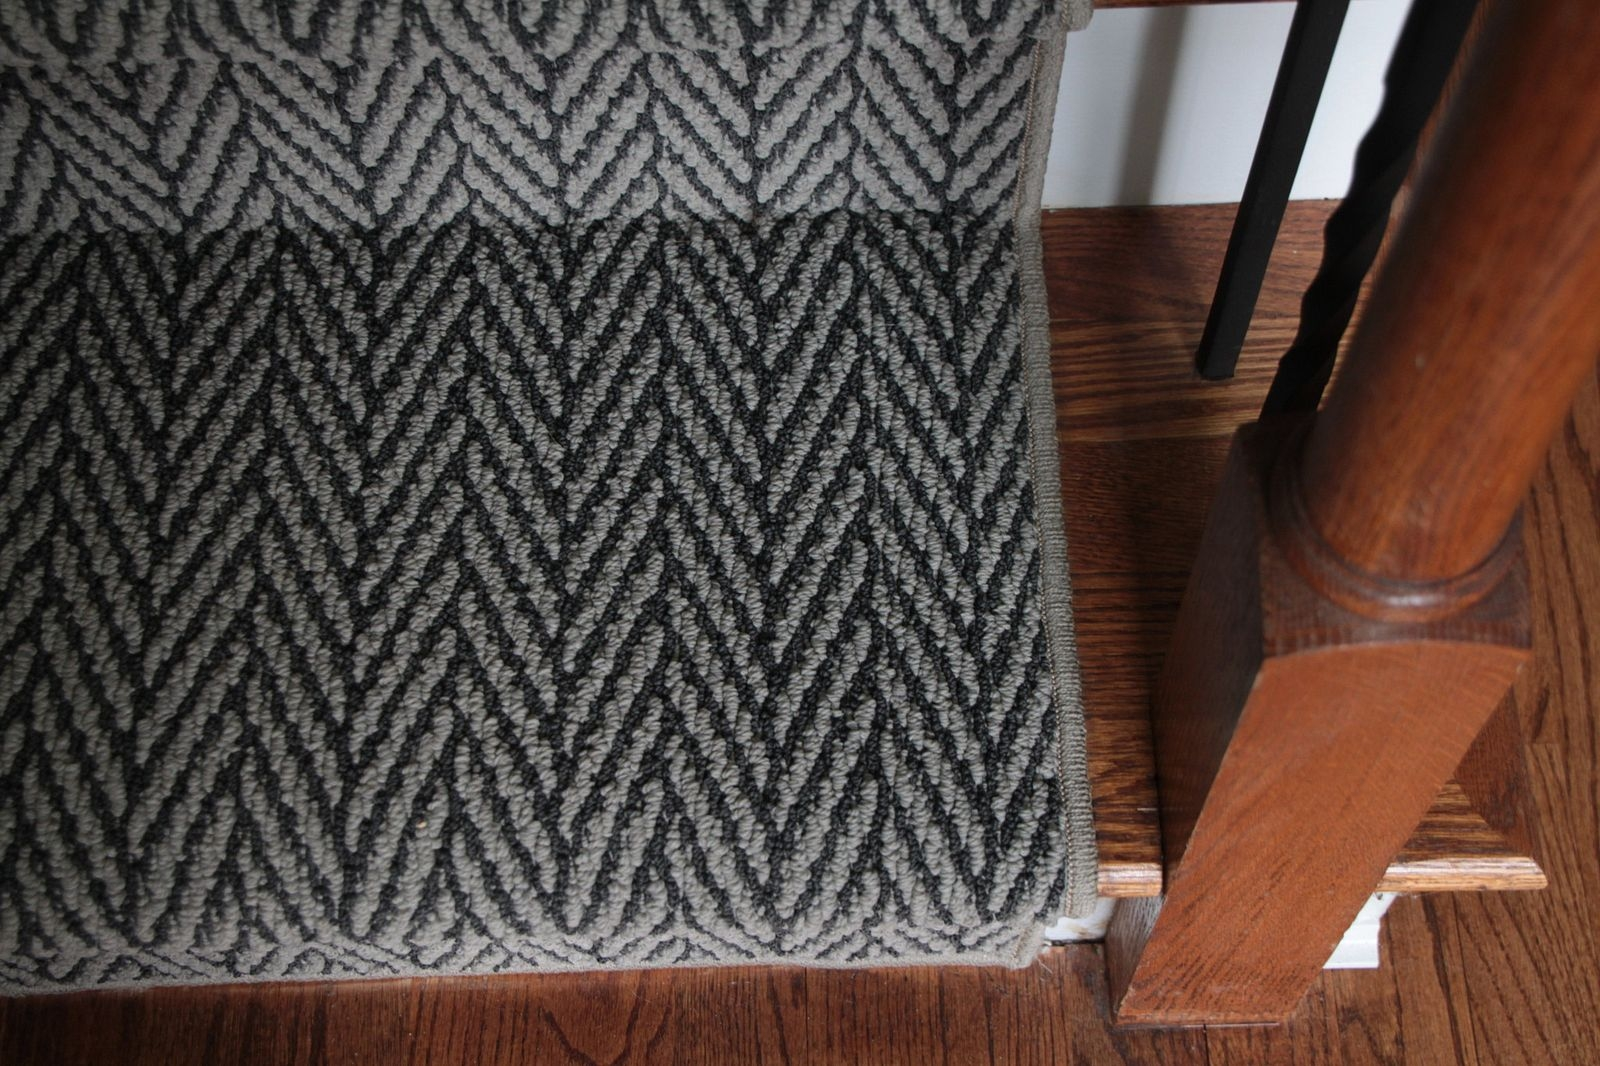 Floor Design Shaw Designers Change How You See Floors Shaw | Grey Patterned Carpet Stairs | Unusual | Living Room | Grey Mottled | Carpet Wrapped | Geometric